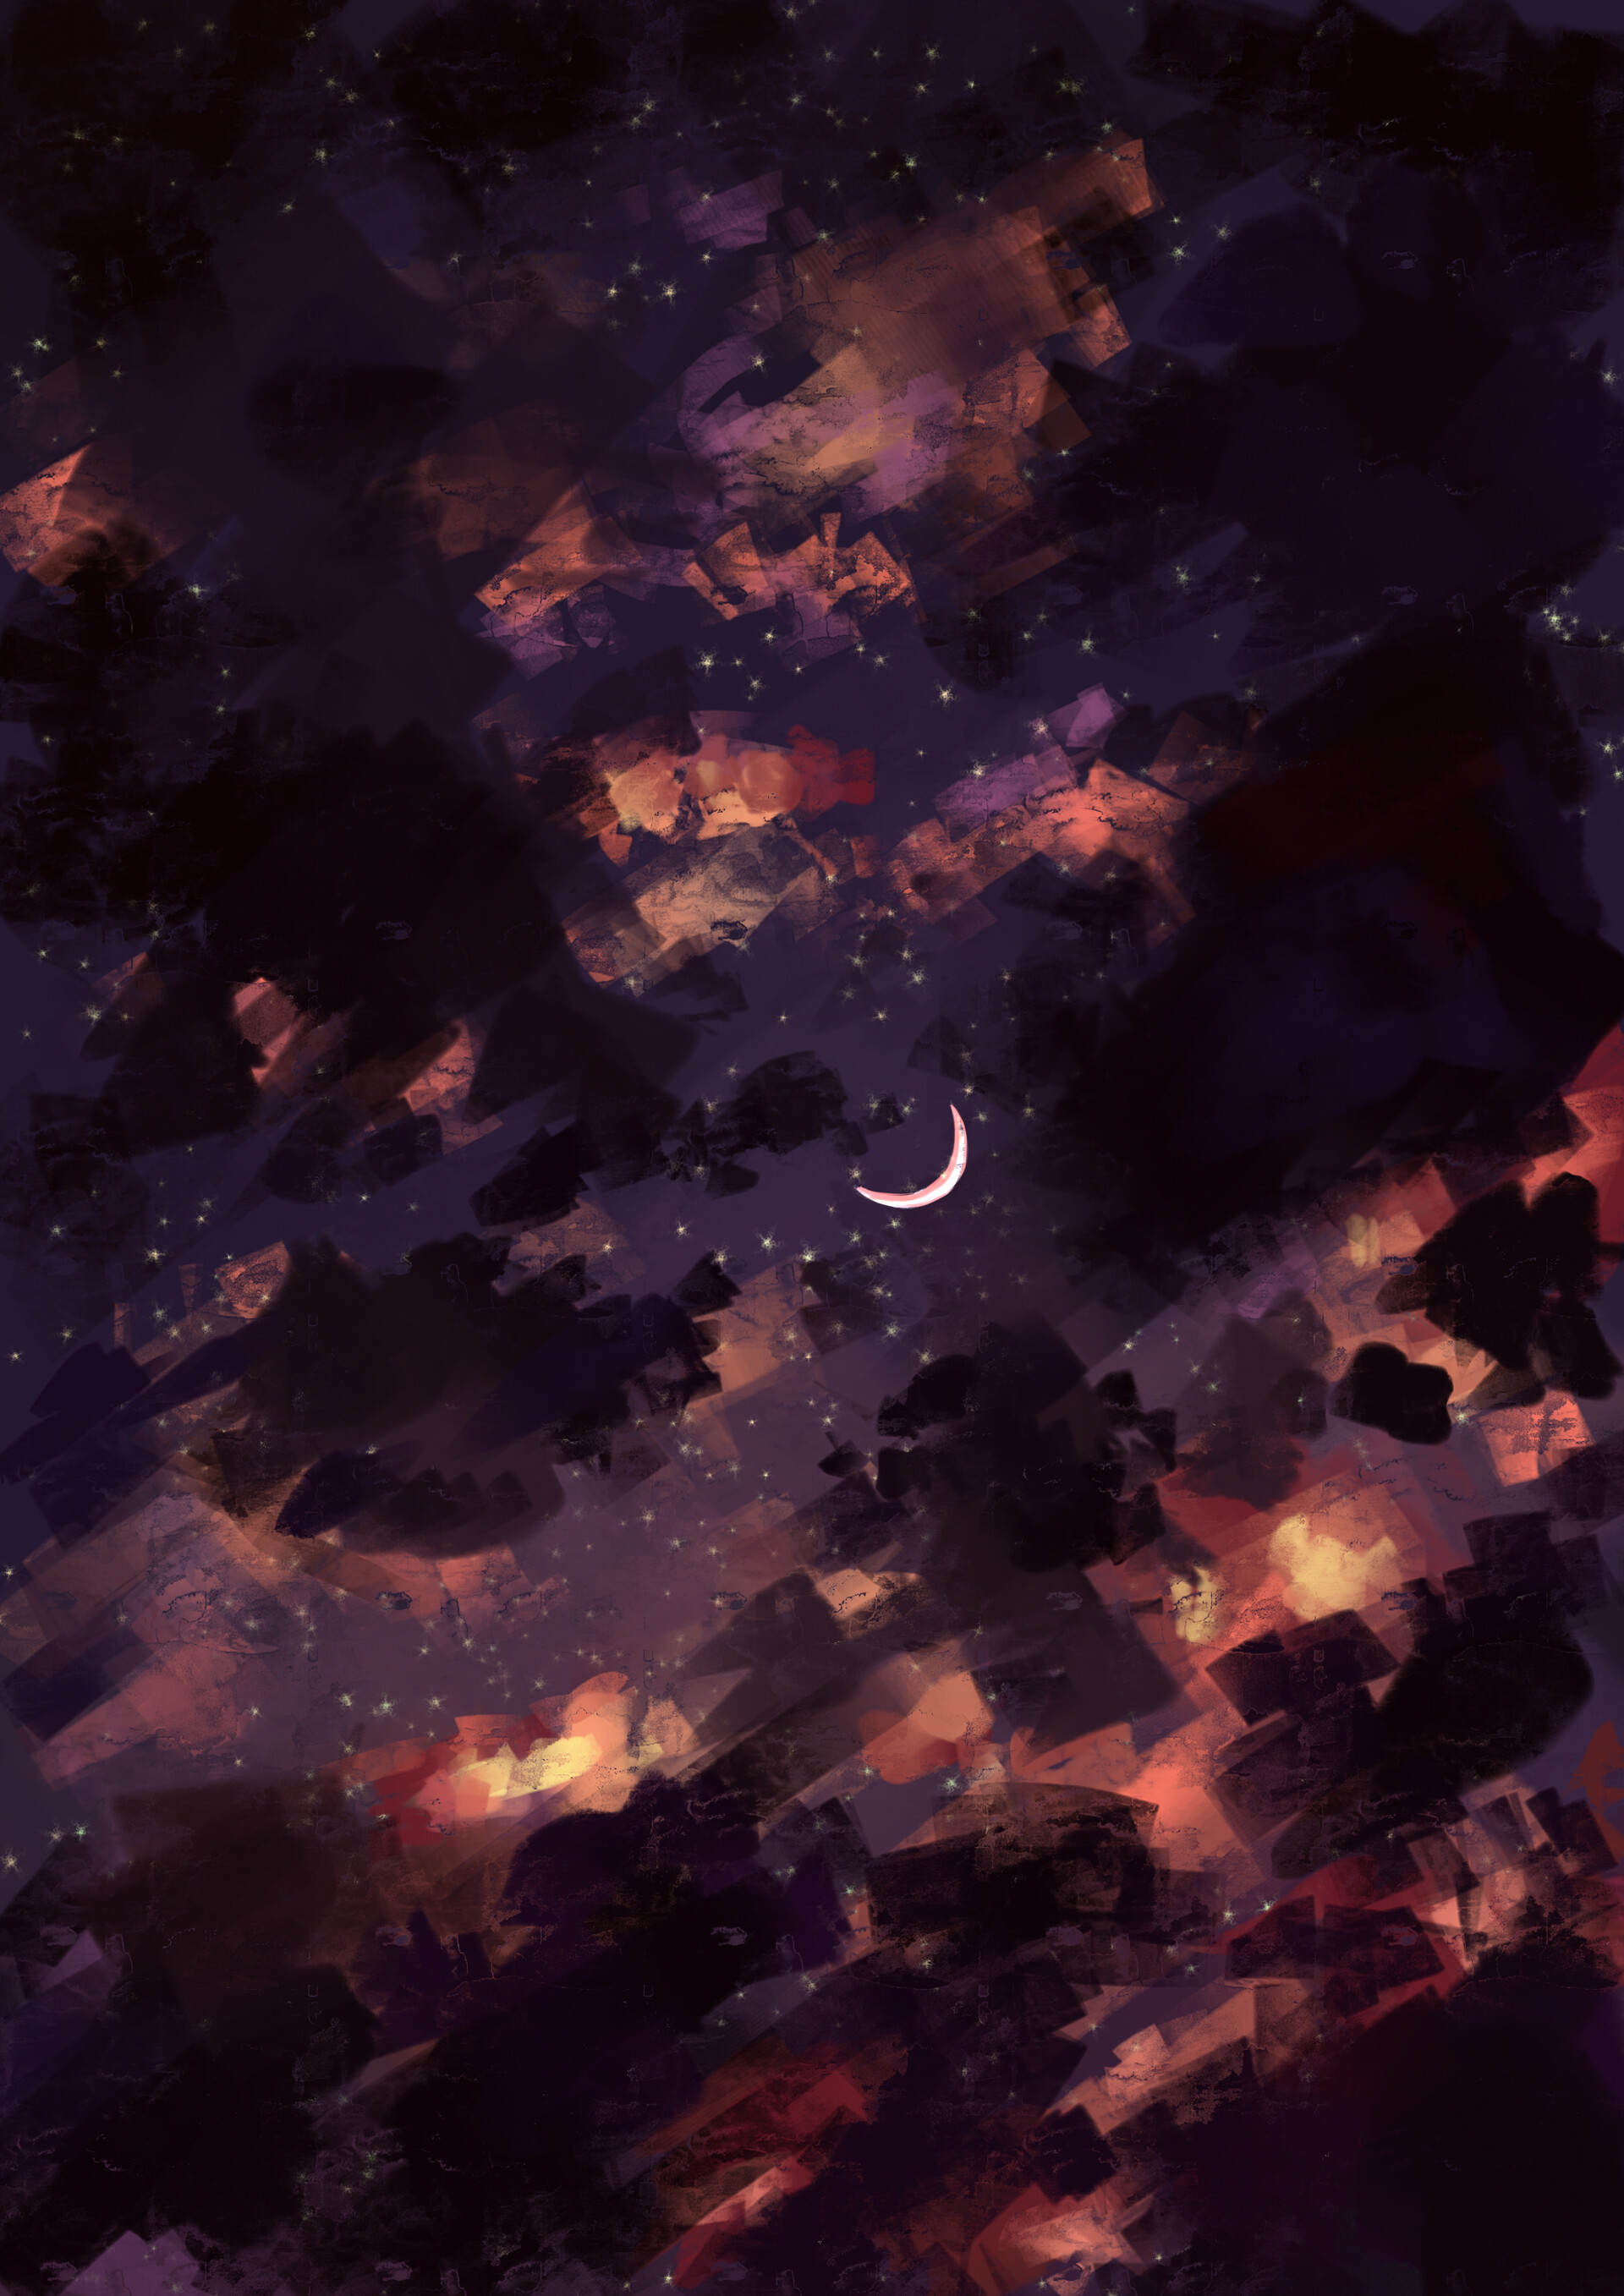 138921 download wallpaper Night, Sky, Art, Stars, Clouds, Moon screensavers and pictures for free